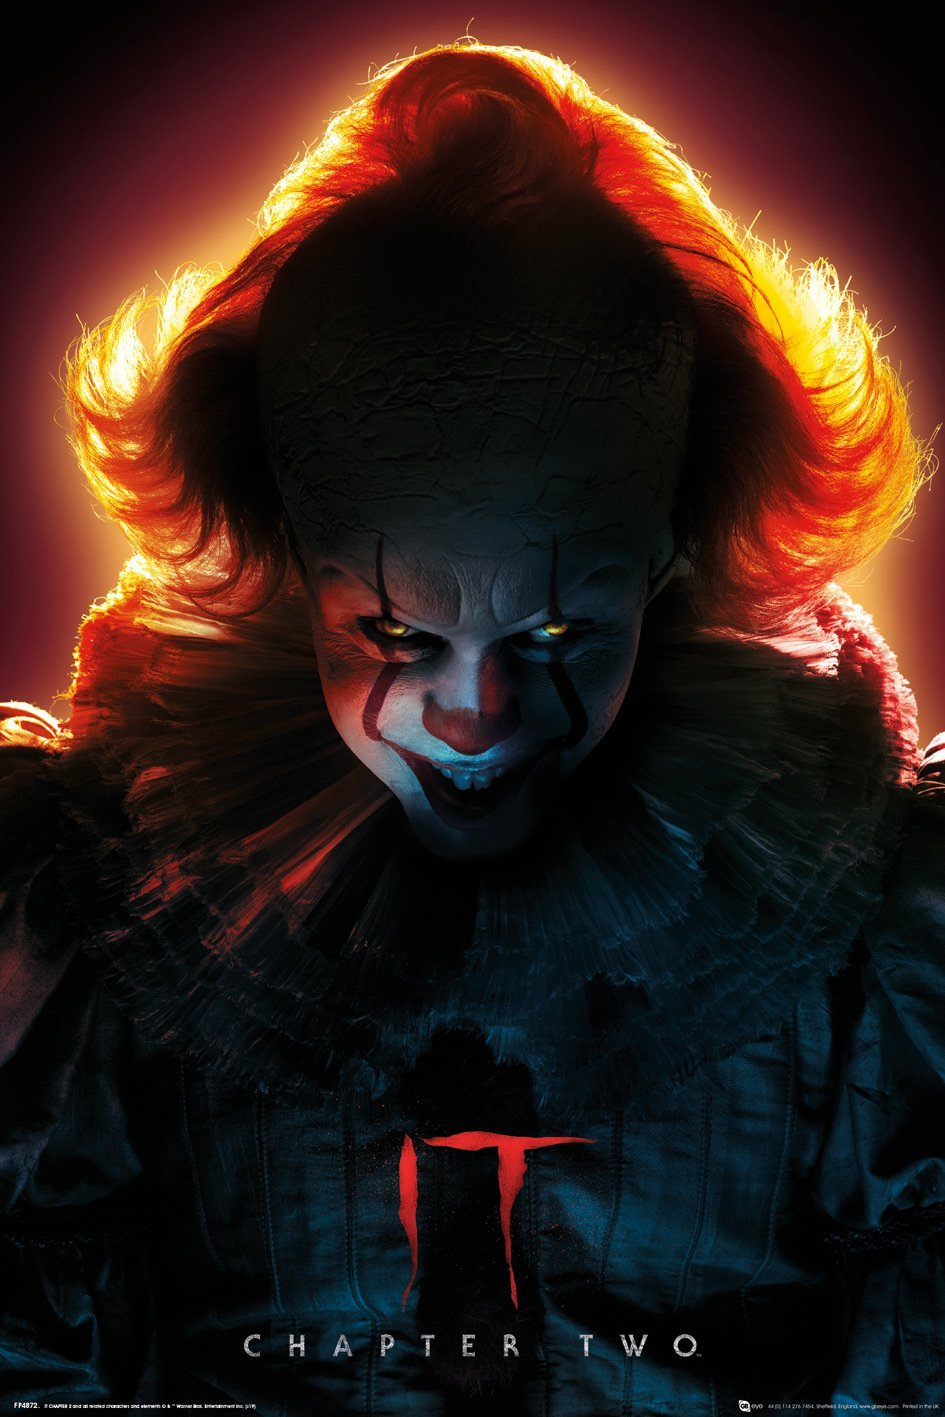 It Chapter 2: Maxi Poster - Pennywise (1025) image